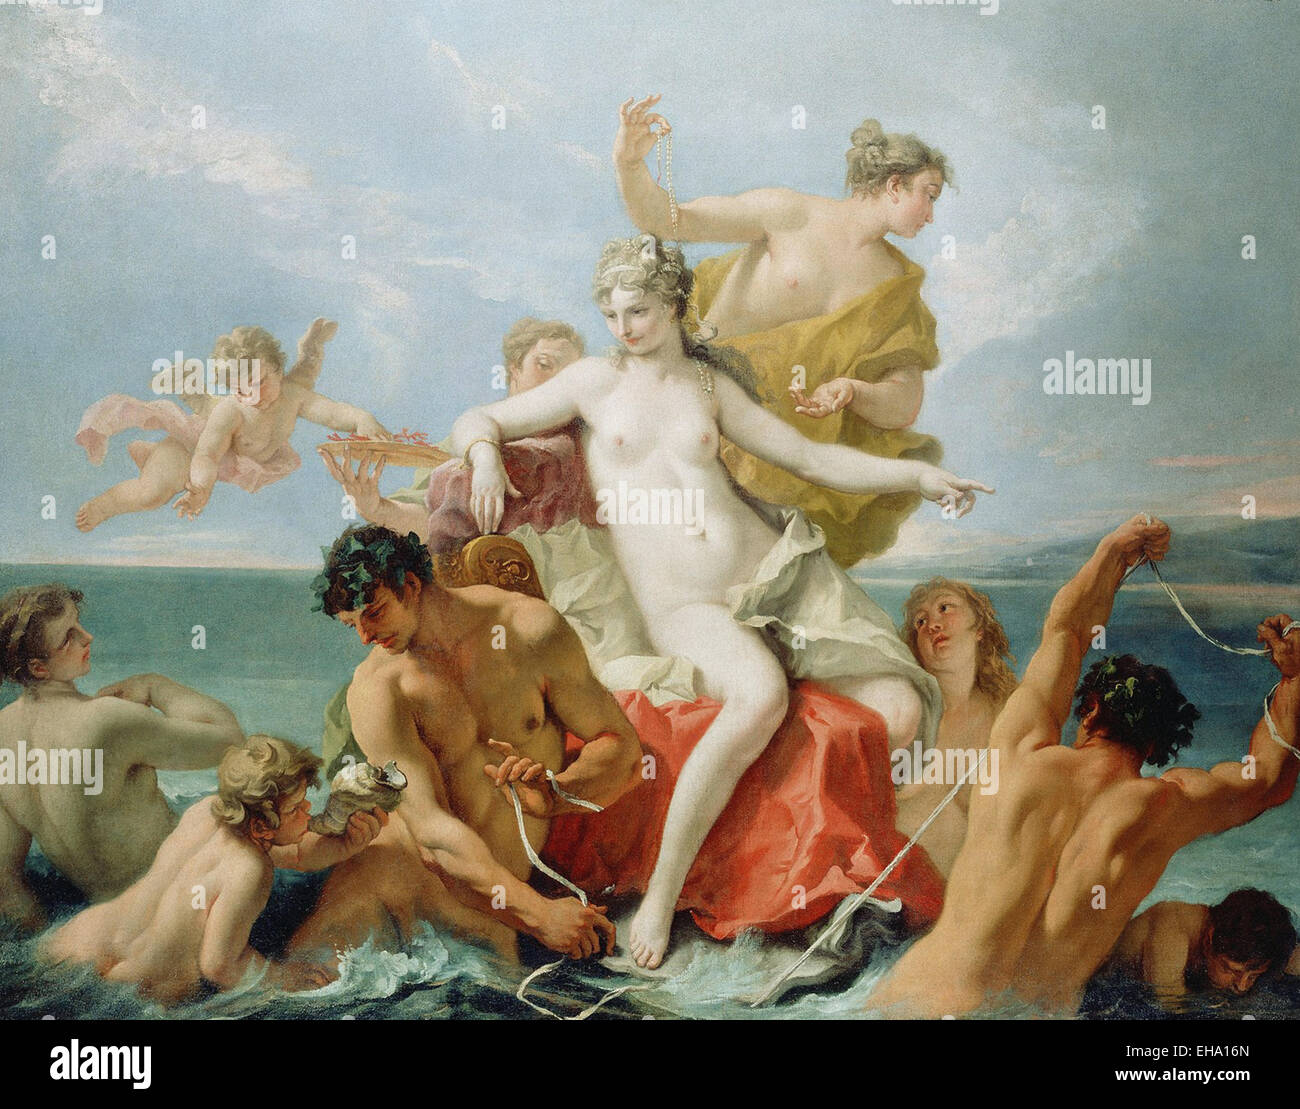 Sebastiano Ricci  Triumph of Marine Venus Stock Photo